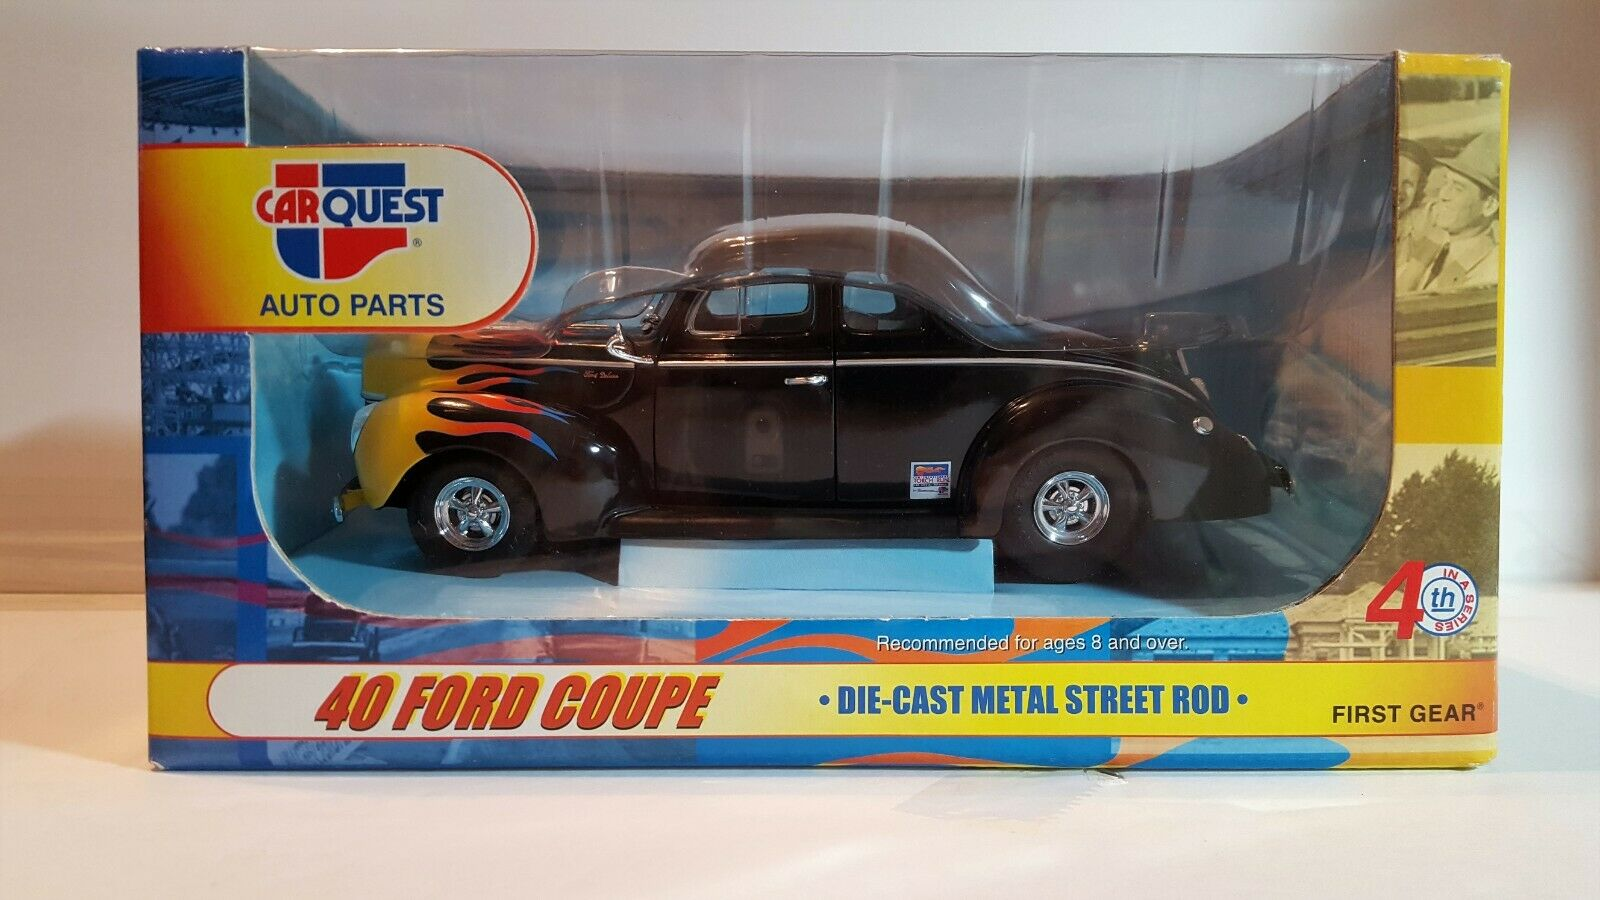 CARQUEST 40 Ford Coupe Die Cast Toy Car 2003 Gear Street Rod 140 1600x900